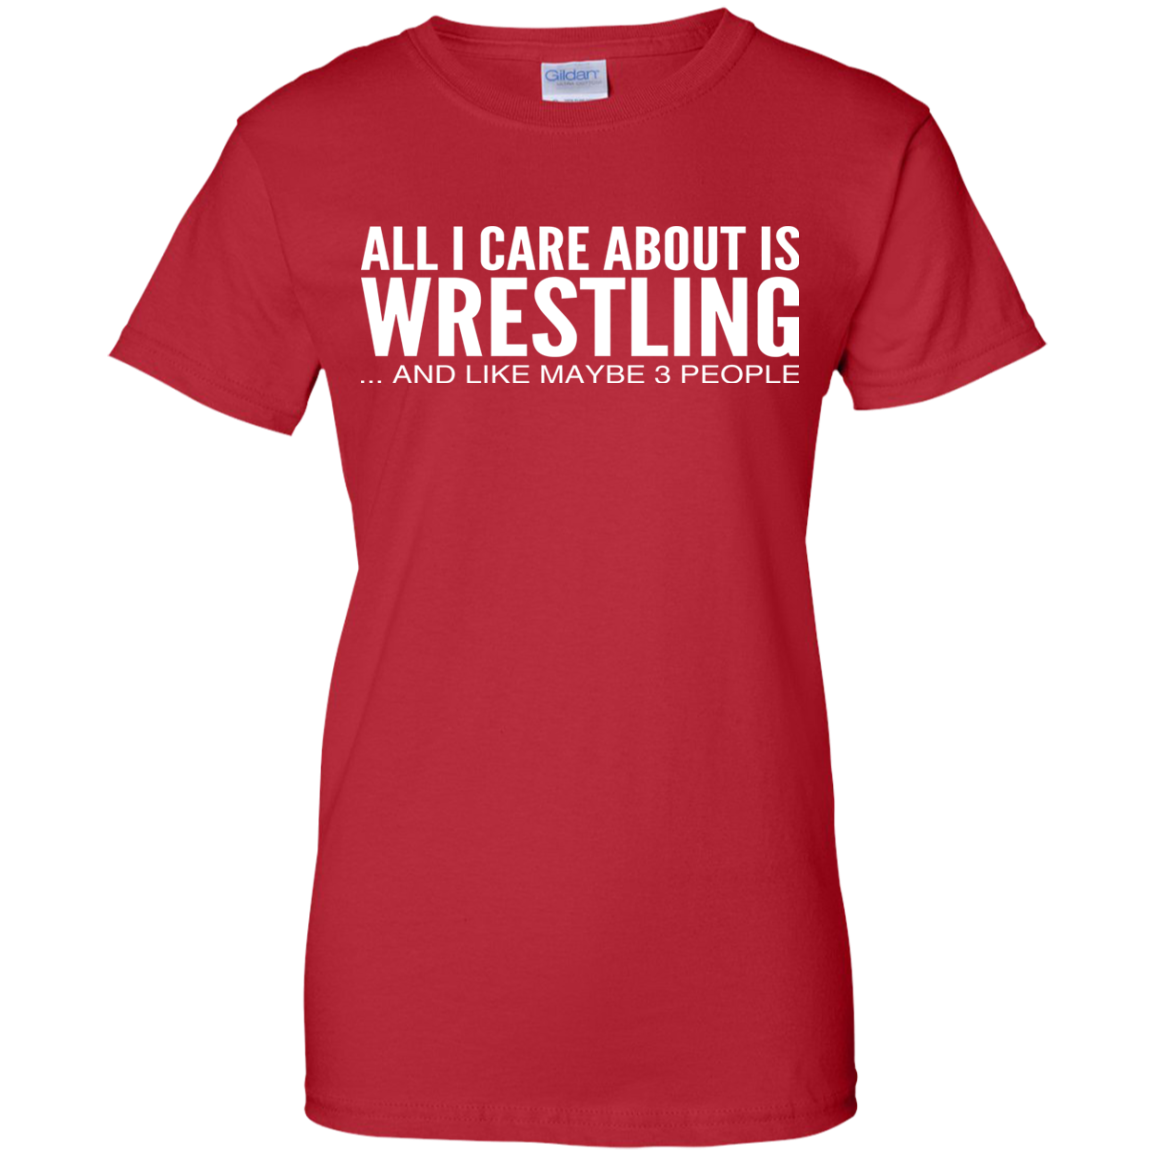 All I Care About Is Wrestling And Like Maybe 3 People Ladies Tees